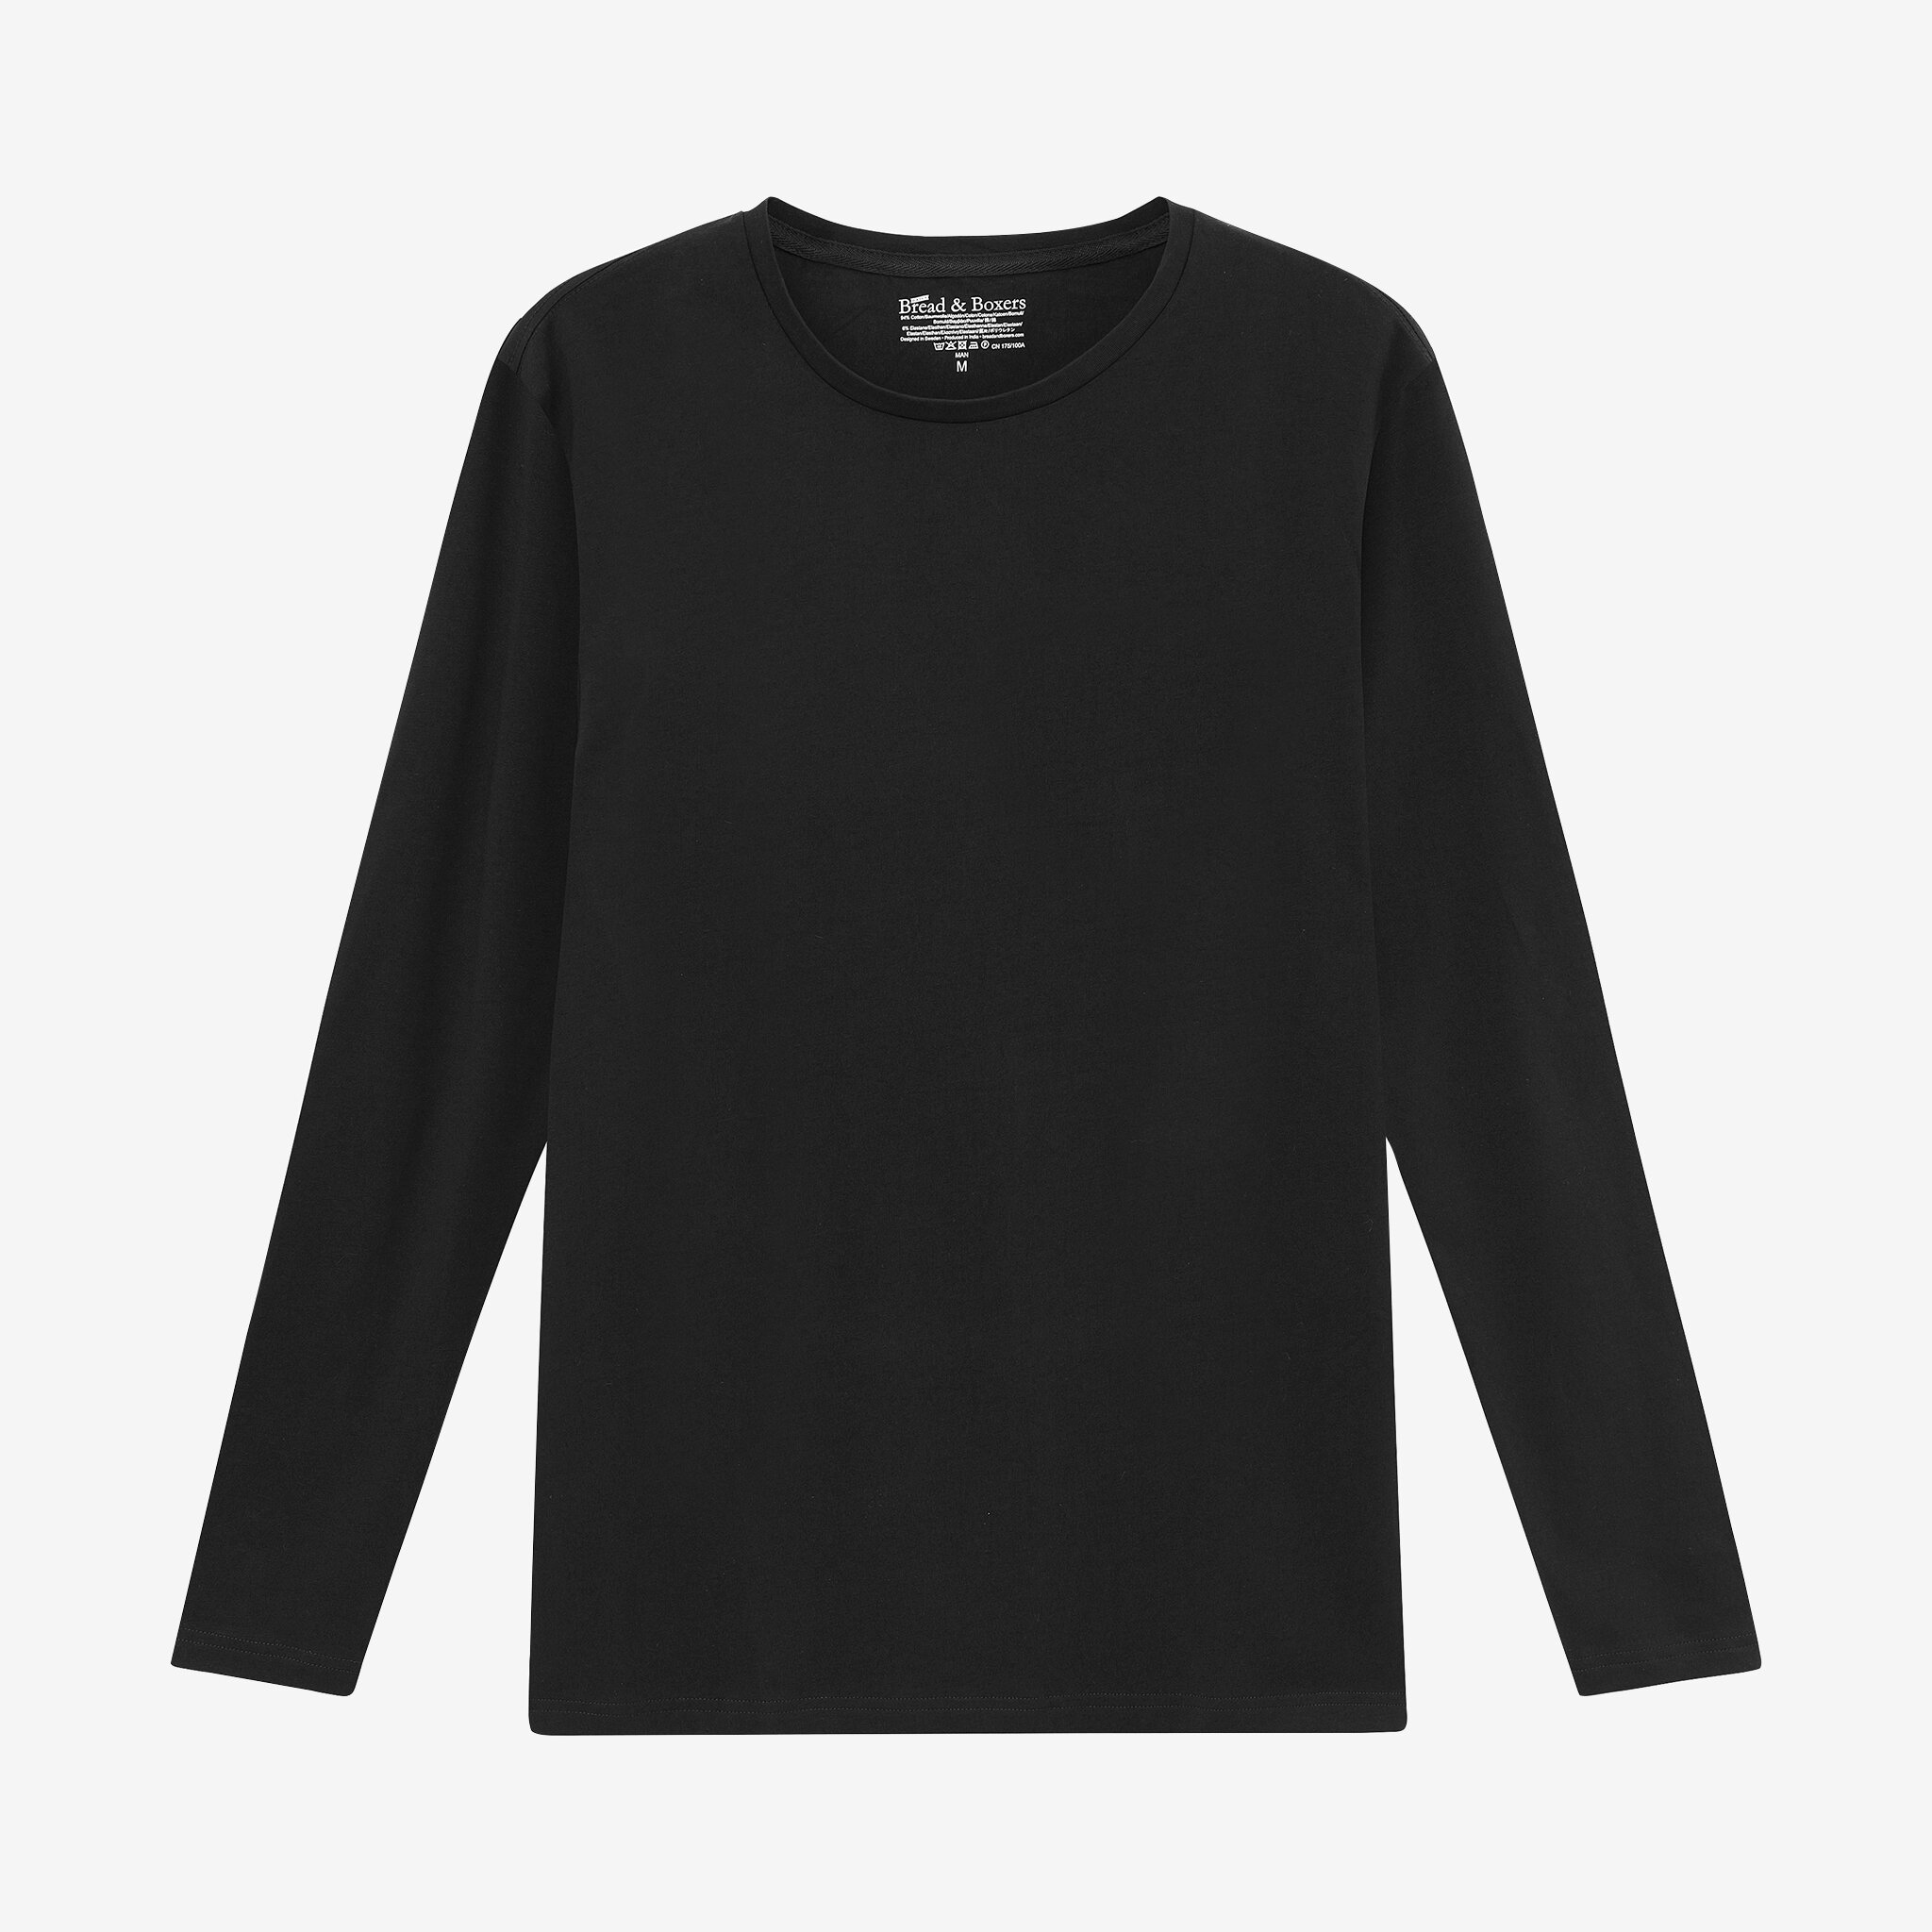 116202_Man_Long Sleeve_black